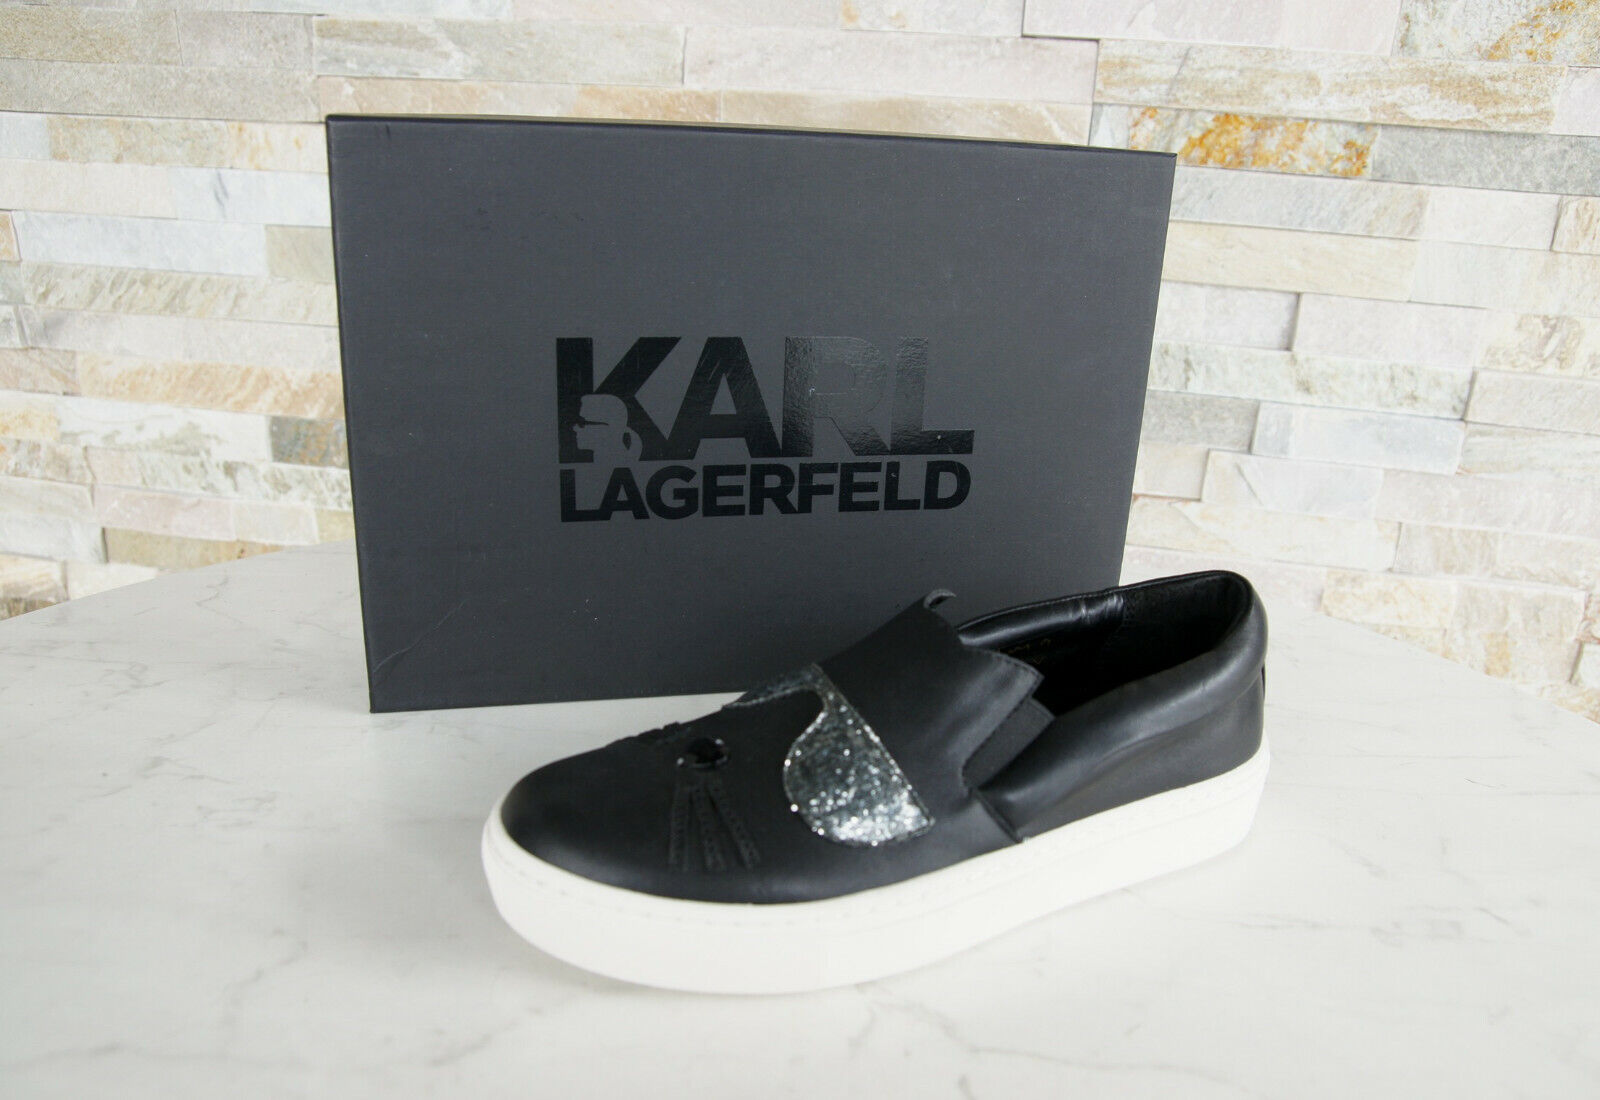 Karl Lagerfeld Eu 39 UK6 Us 8 Slipper shoes shoes Black New Formerly Rrp